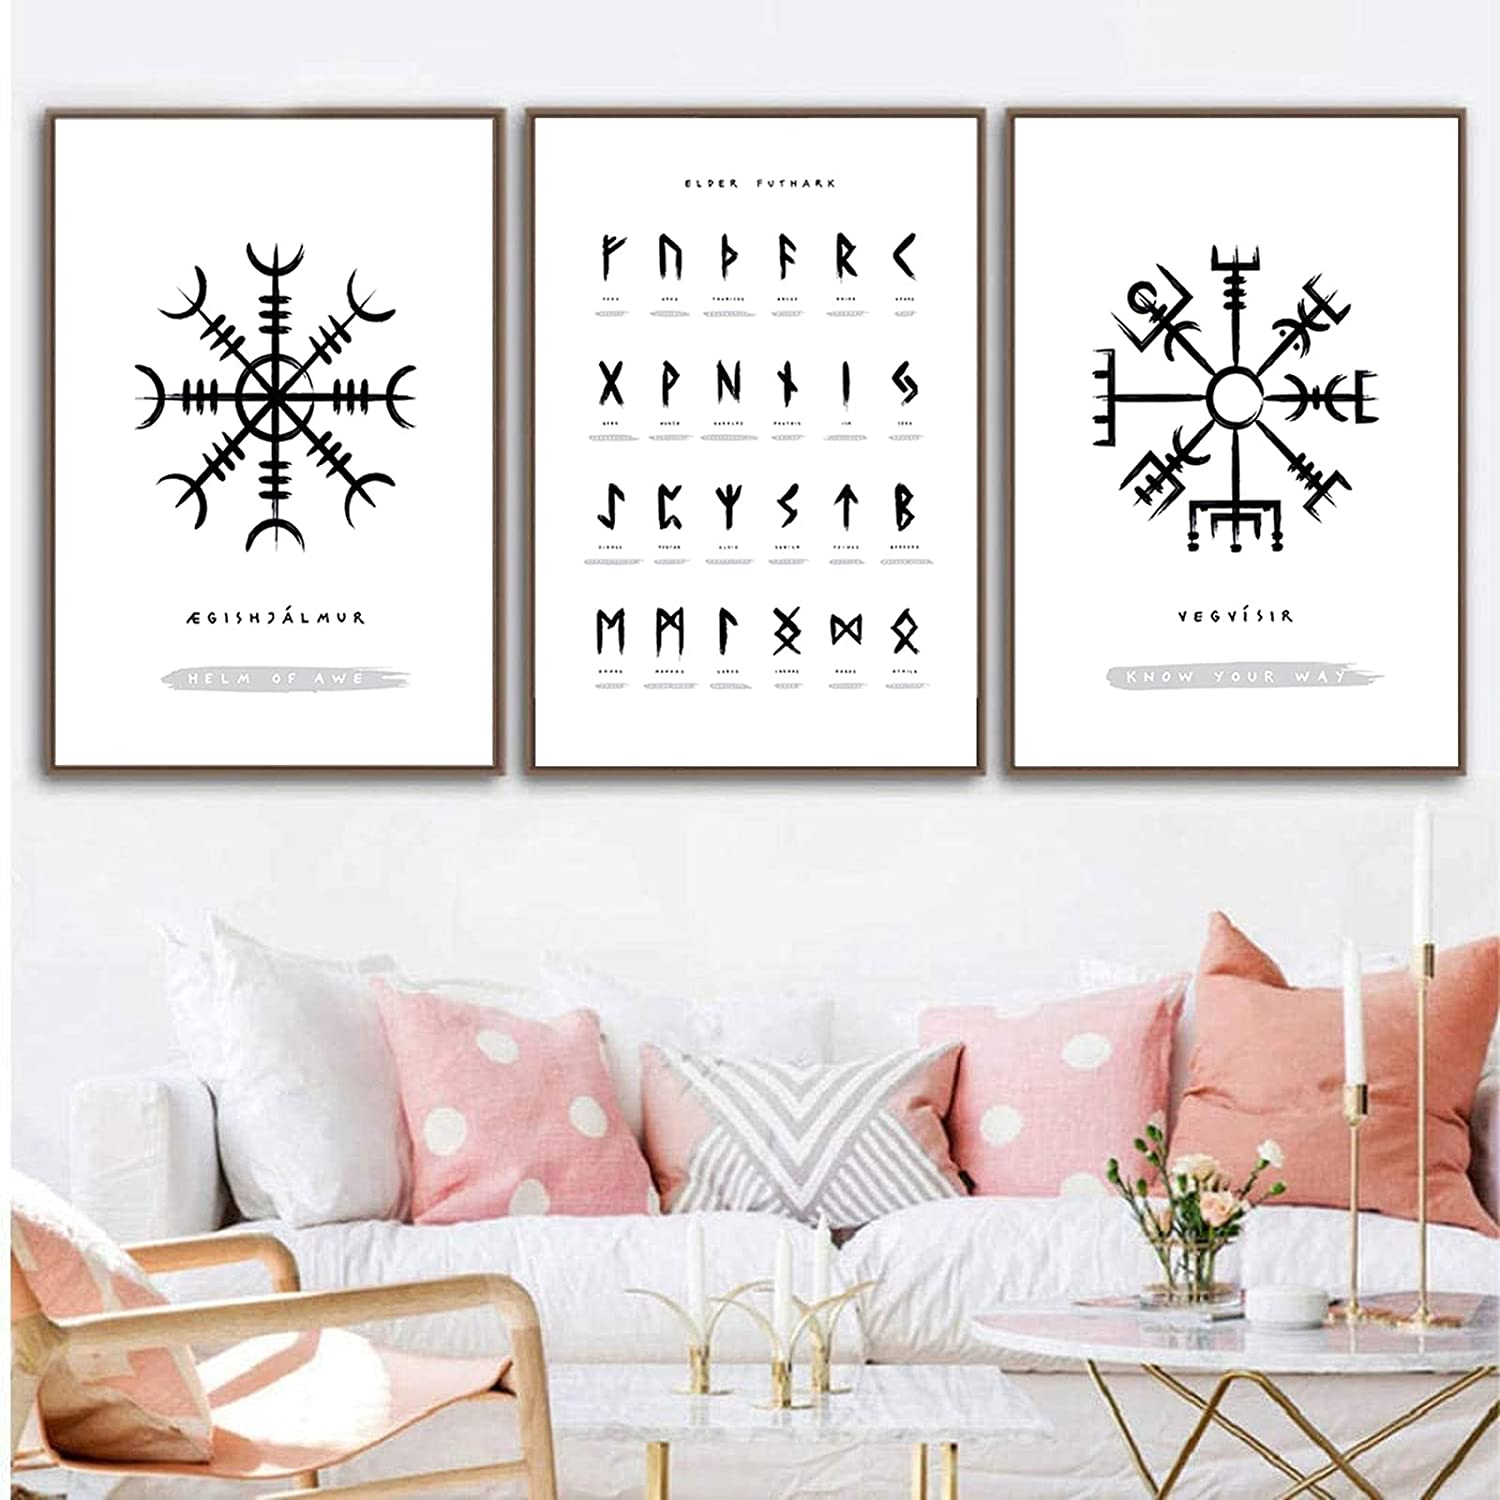 Modern Canvas Printing Viking Old Norse Elder Futhark Runes Wall Art Pictures Canvas Painting Living Room Decor 20x28inchx3pcs No Frame